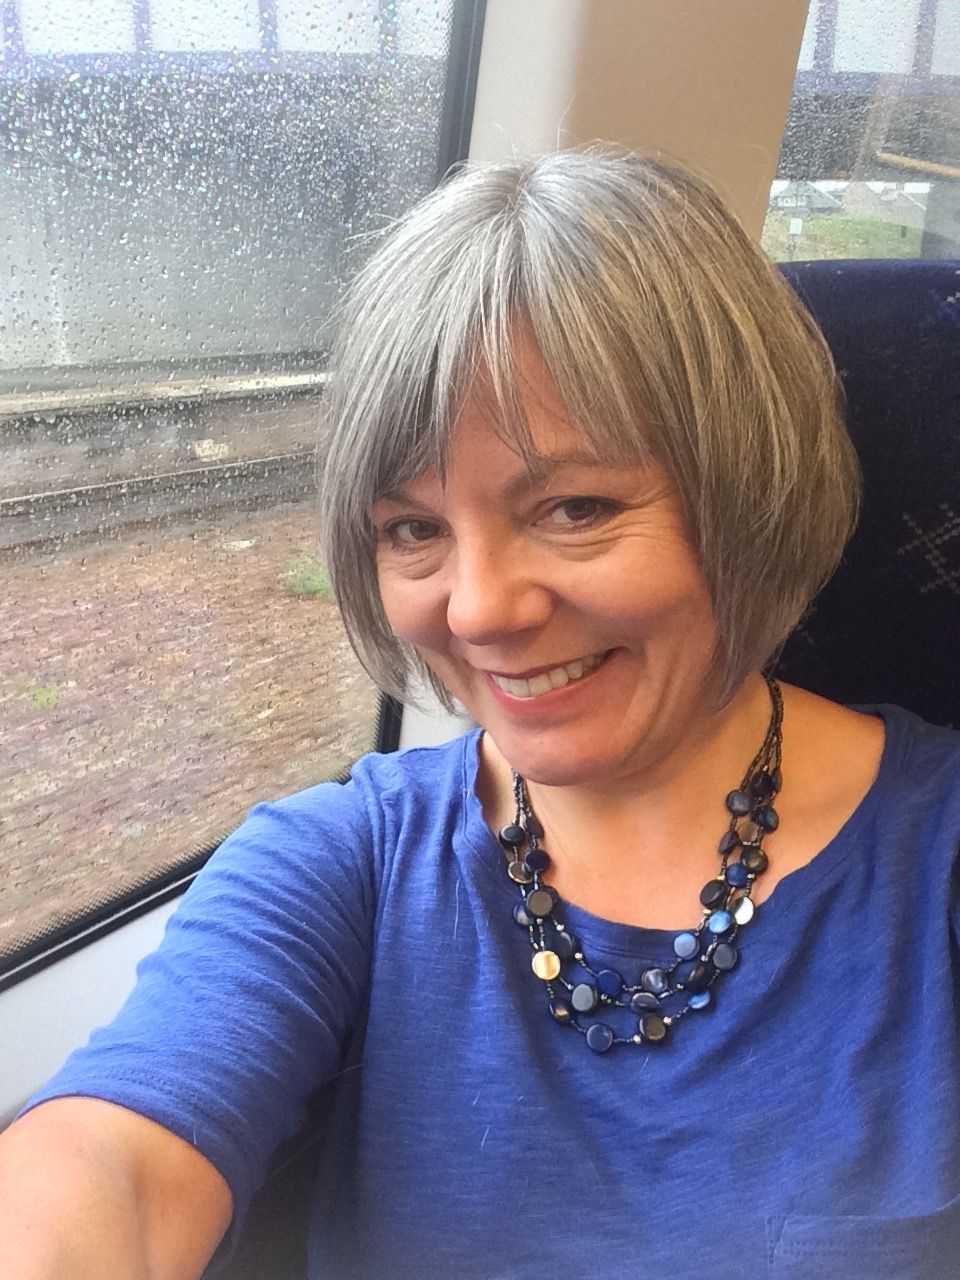 Growing It Long Was Doing My Head In So Had It Chopped Today Excuse The Train Pic And View Of Rainy Scotland Tijdloze Schoonheid Schoonheid